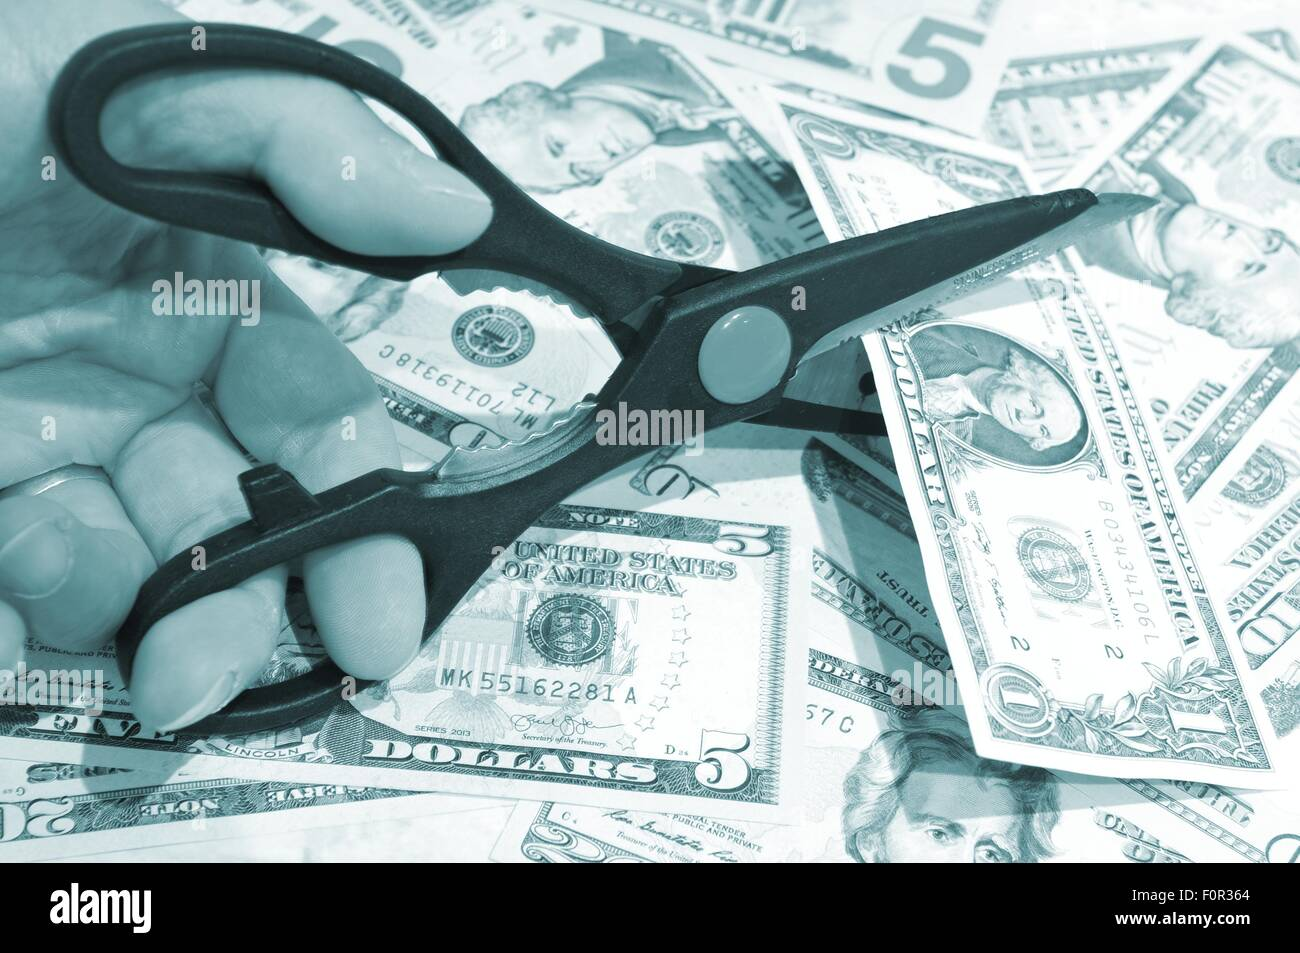 Budget cut concept with scissors and US dollars - Stock Image